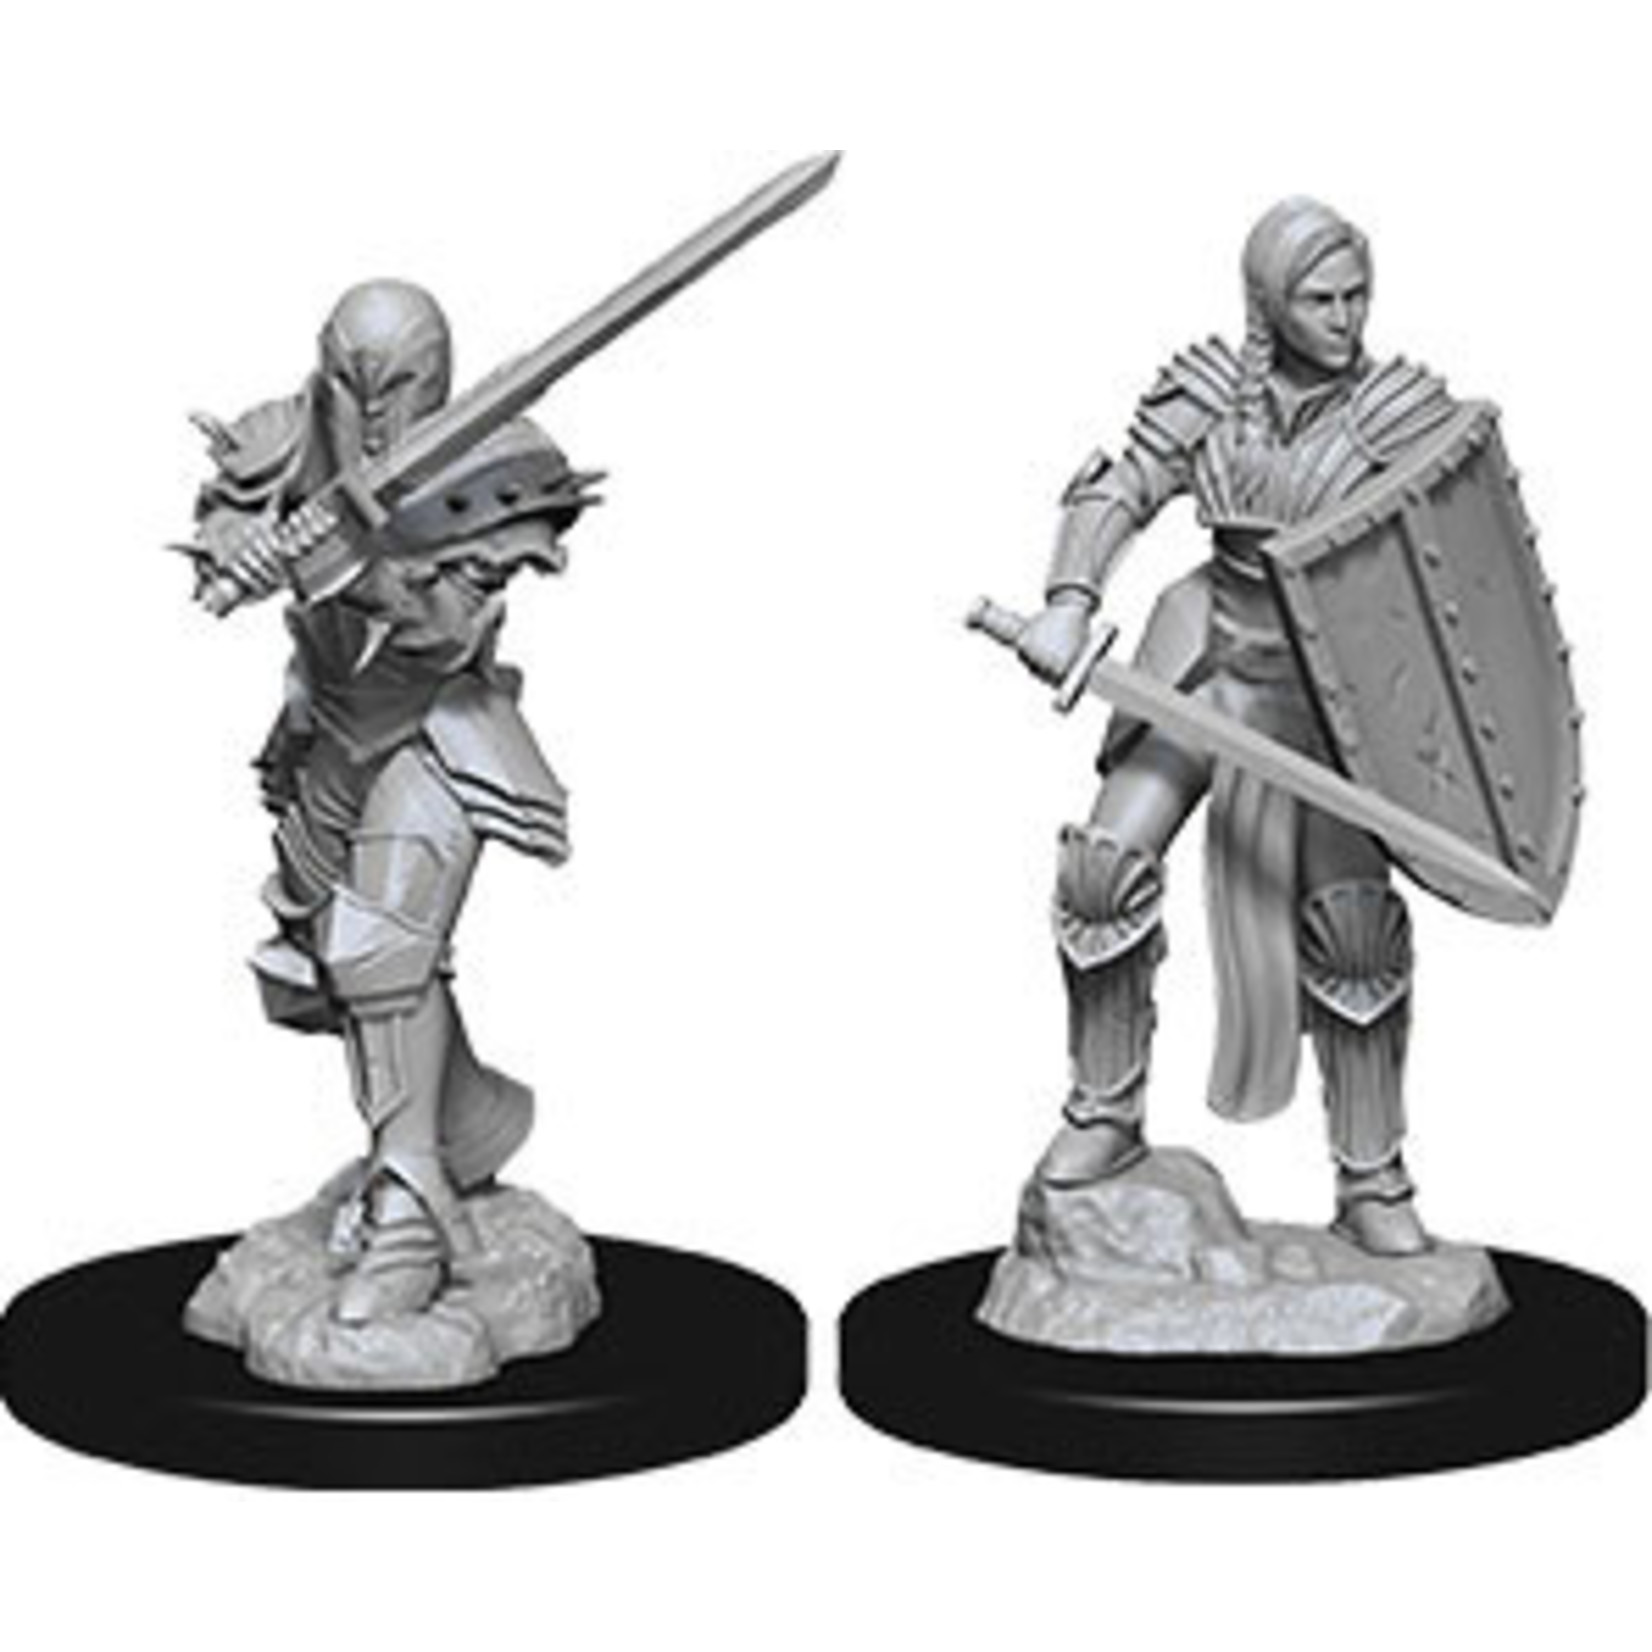 WizKids Dungeons & Dragons Nolzur's Marvelous Miniatures: Female Human Fighter